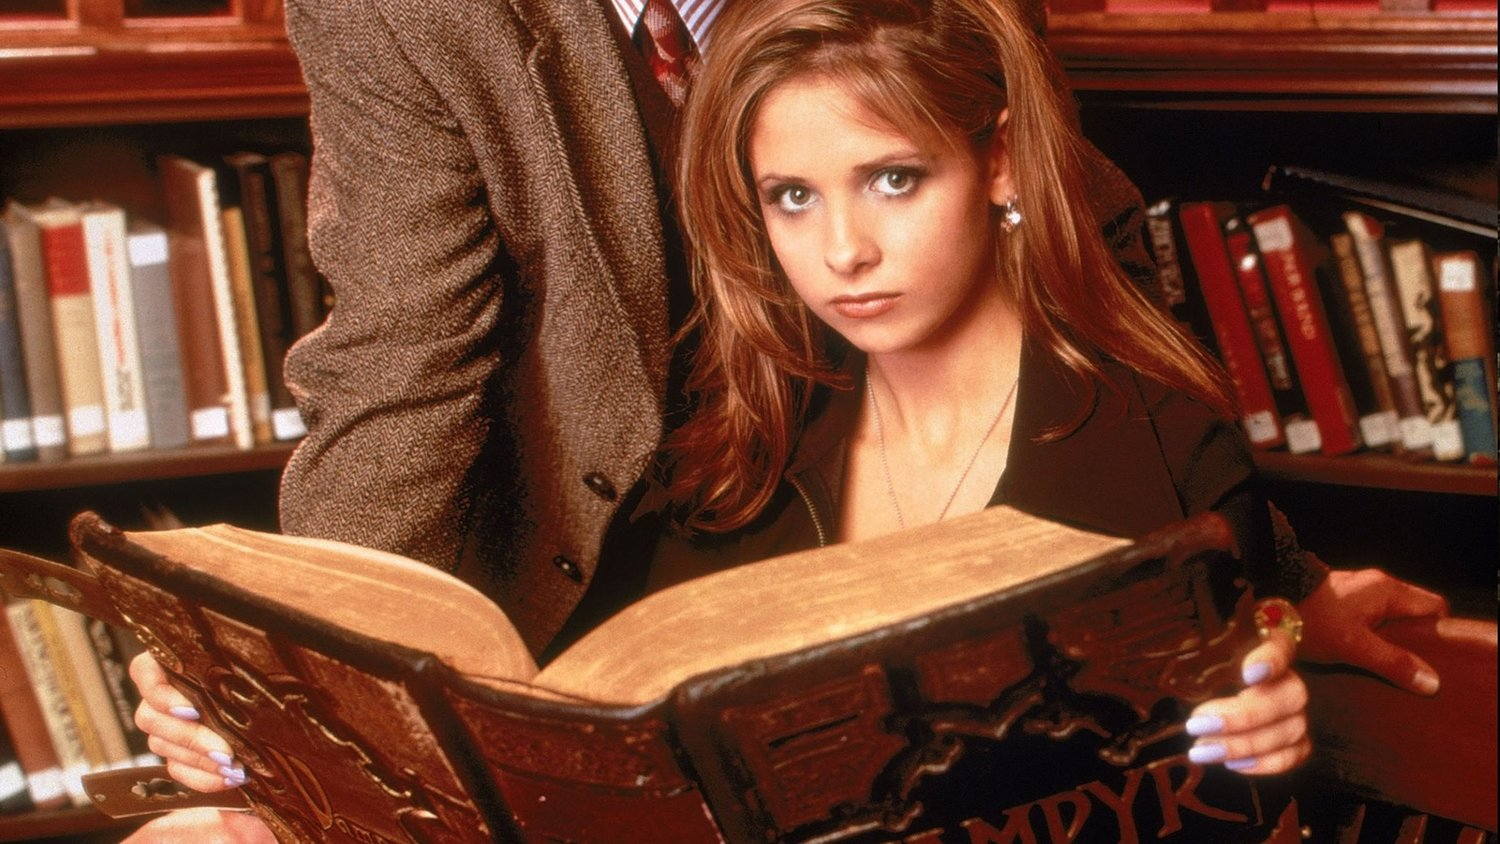 BUFFY THE VAMPIRE SLAYER Producer Gail Berman Wants a Series Revival, Says No One Expected It to Be a Hit